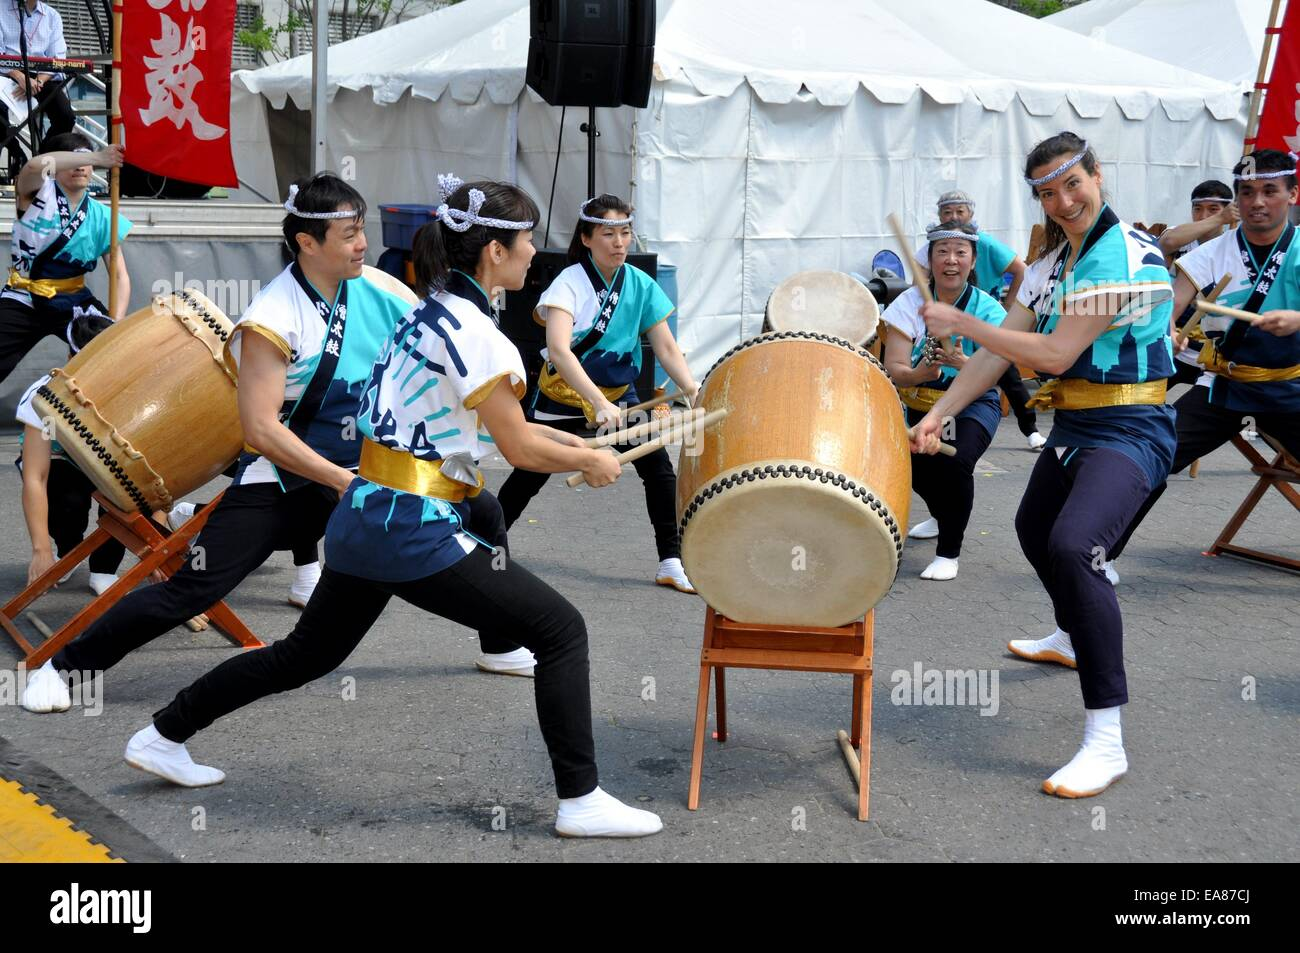 http://c7.alamy.com/comp/EA87CJ/nyc-buddhist-japanese-group-soh-daiko-in-performance-at-the-32nd-asian-EA87CJ